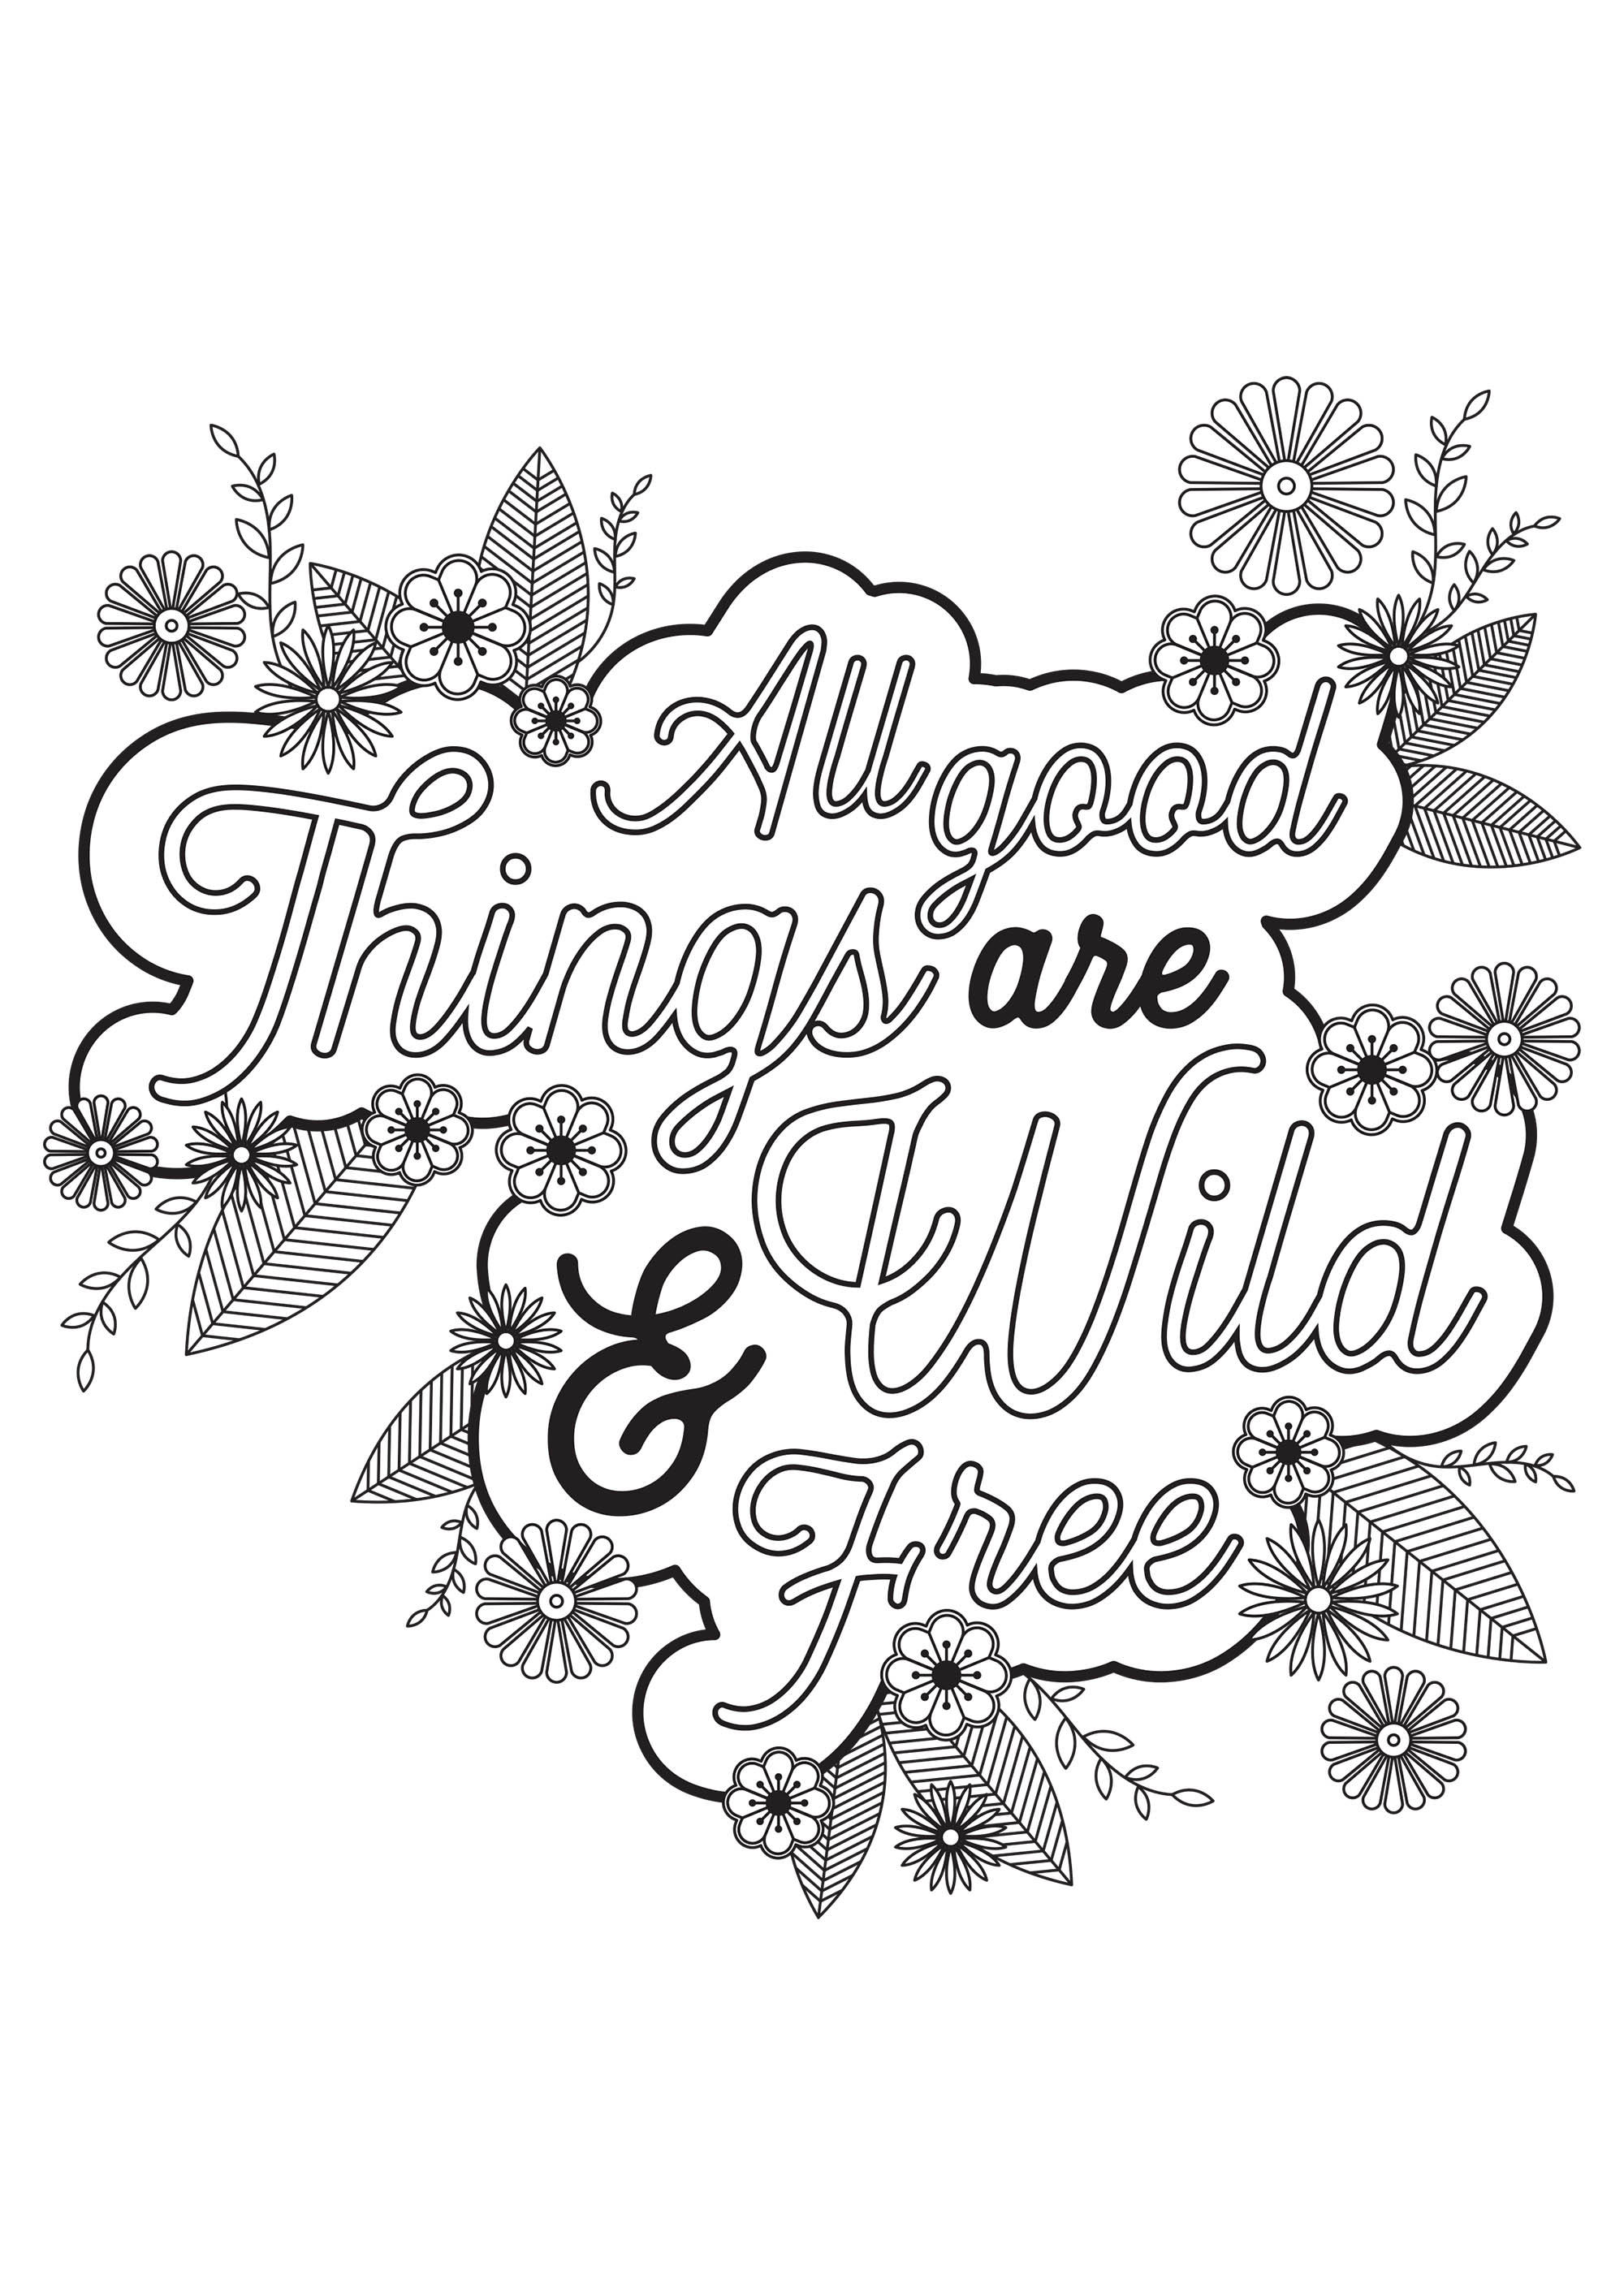 All good Things are Wild & Free. From the website Gifts.com